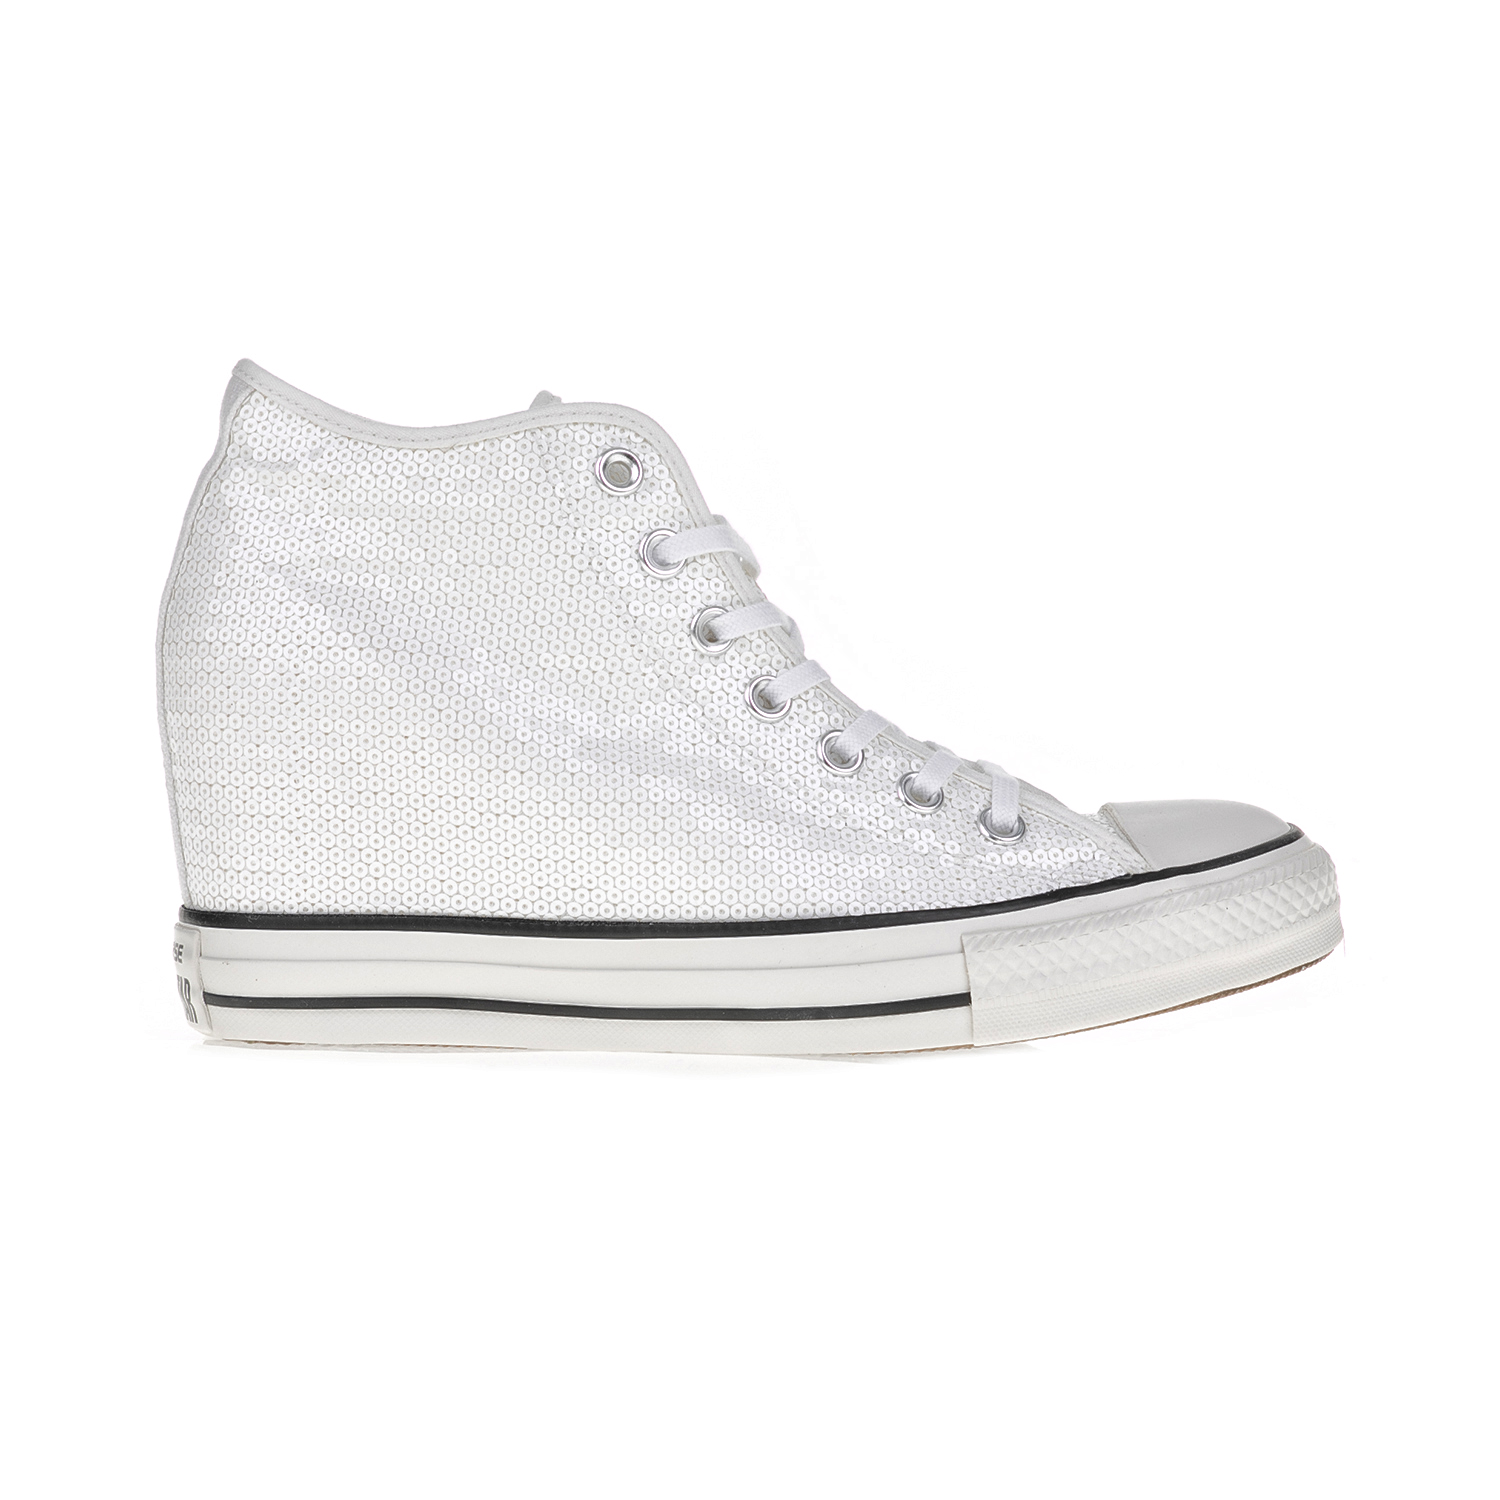 CONVERSE – Γυναικεία αθλητικά μποτάκια CONVERSE CT AS Mid Lux λευκά